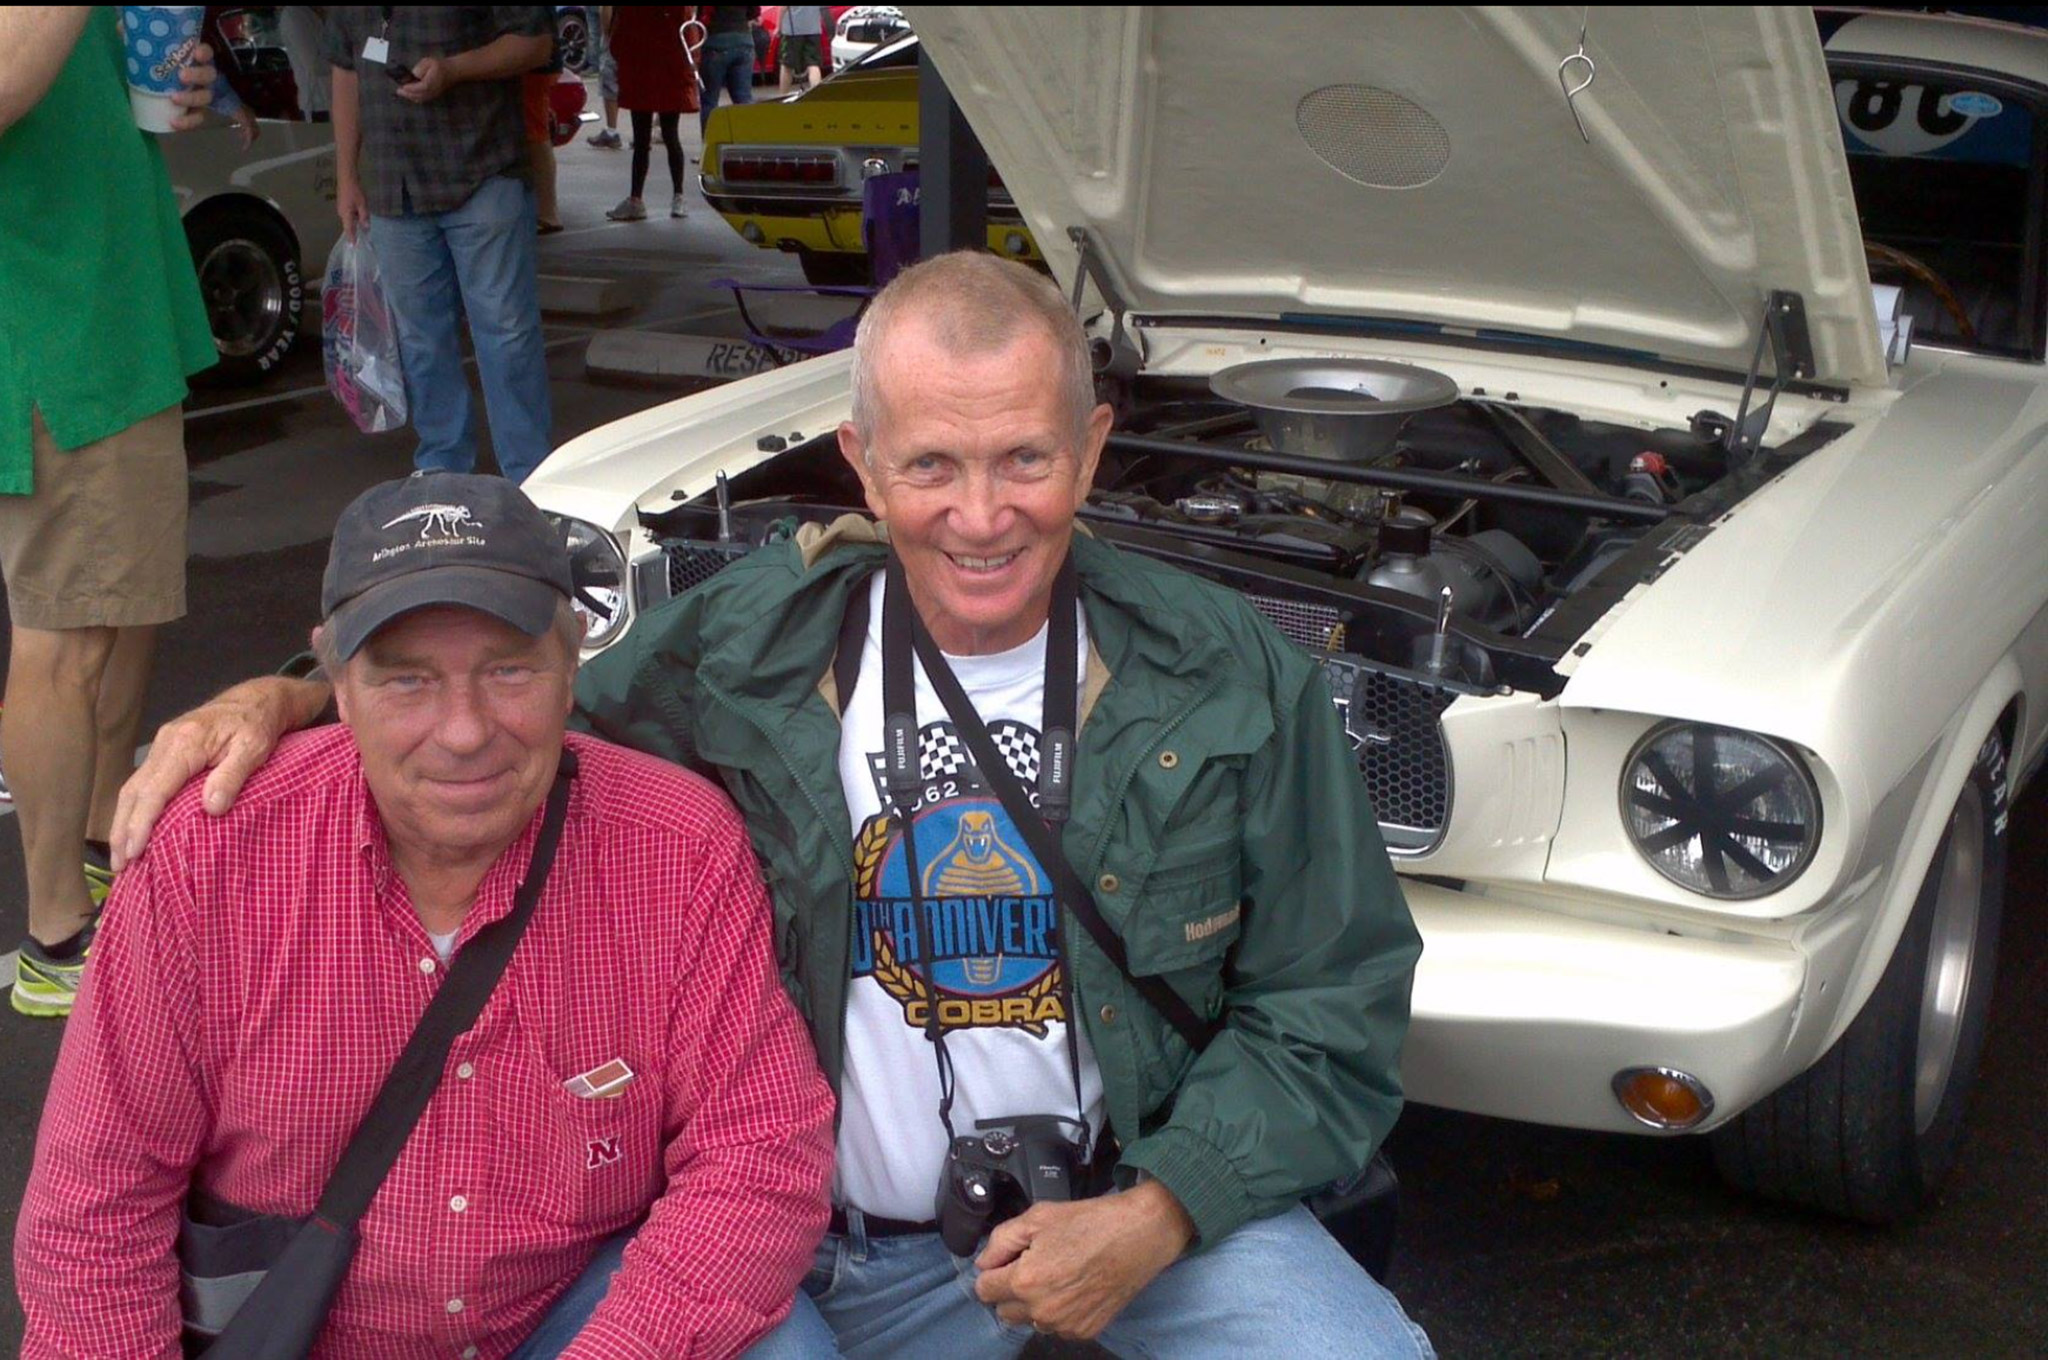 Our two Green Valley participants and story-tellers as they appear today. Art Sahlstein on the left, and Glenn Alford on the right, in front of 5R002 at the Mid America Tulsa car show in 2014.   (Art Sahlstein photo)